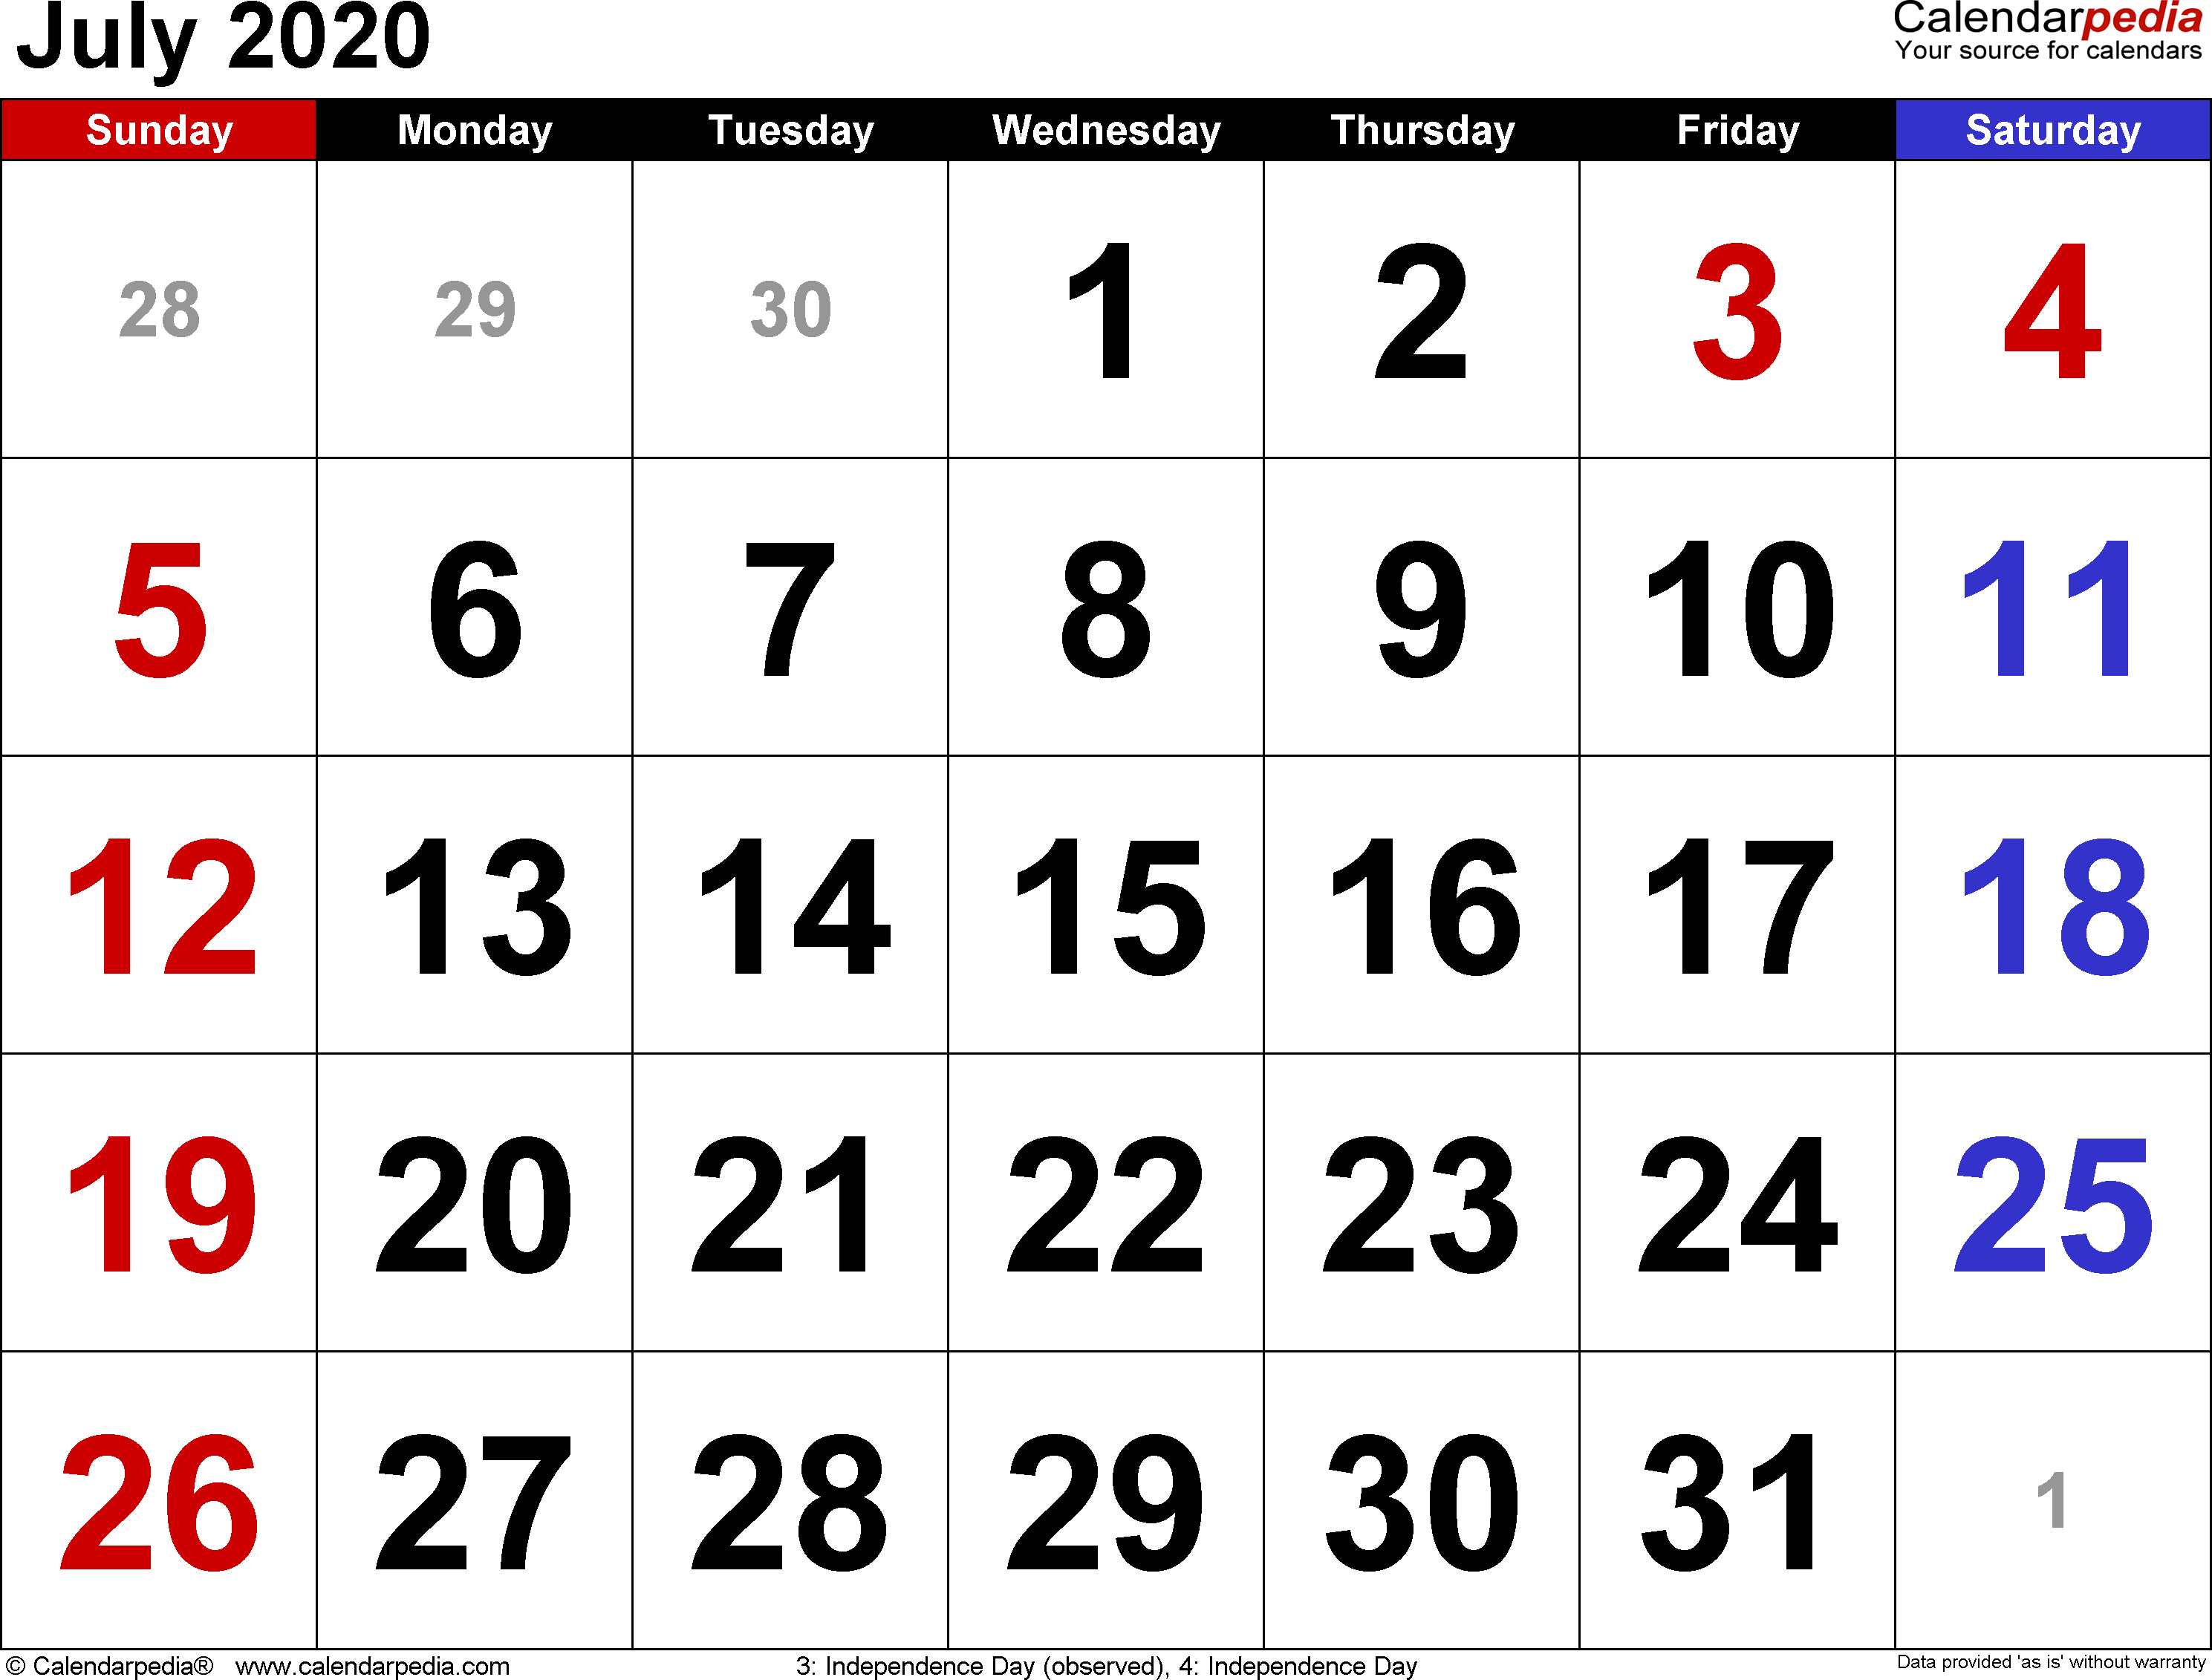 July 2020 Calendars For Word, Excel & Pdf